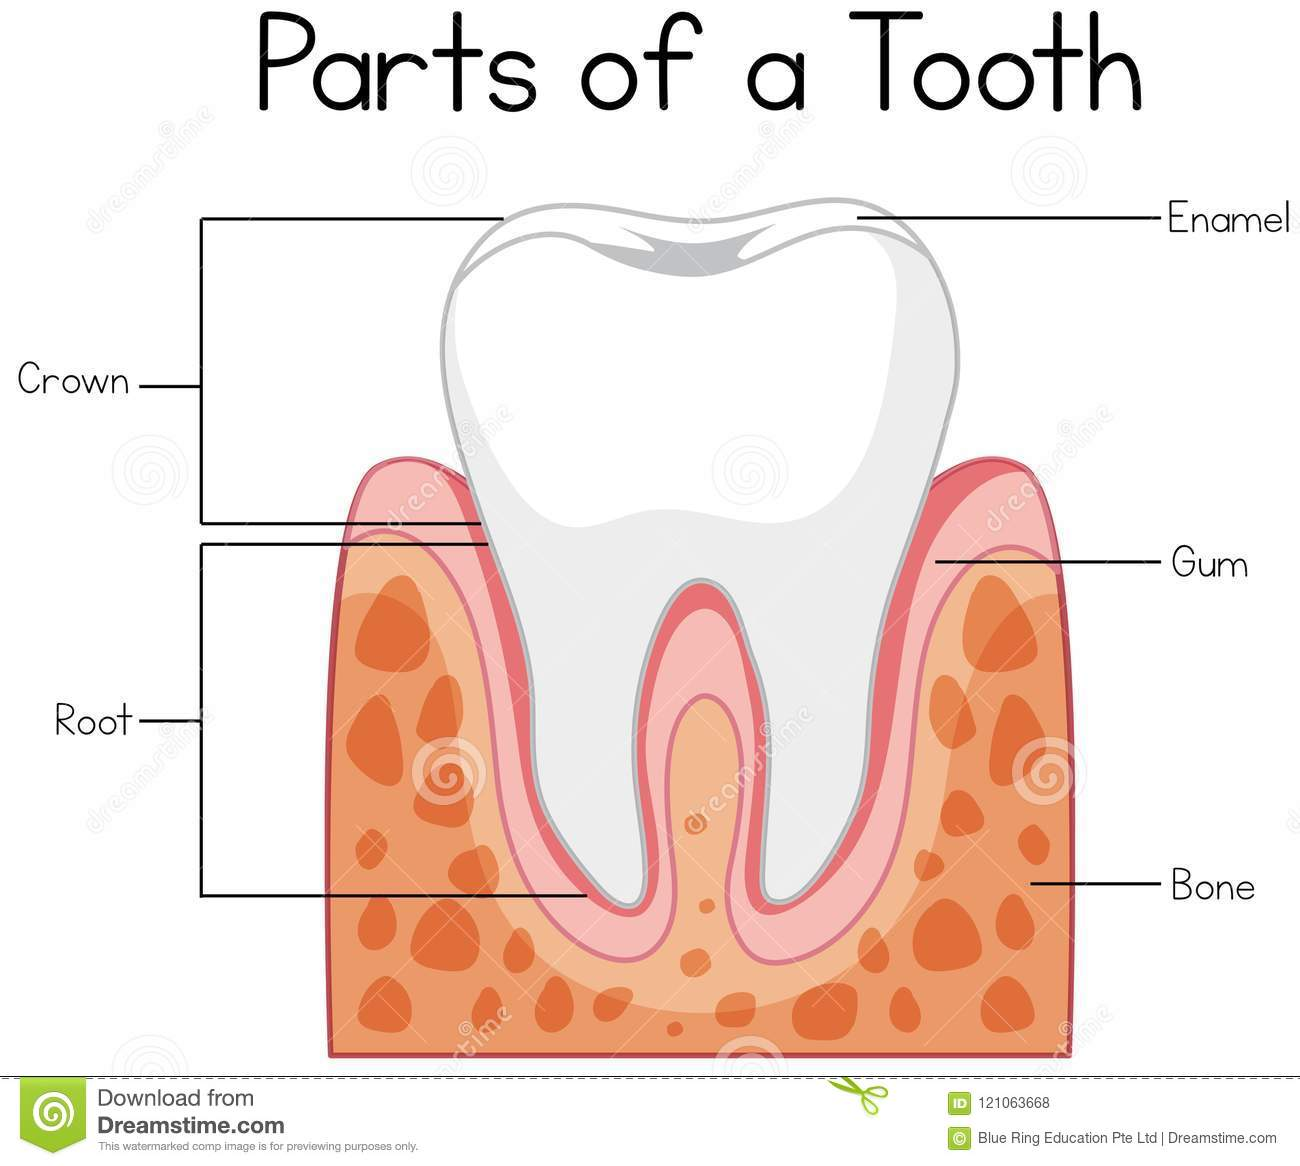 Parts Of A Tooth Diagram Stock Vector  Illustration Of Anatomy